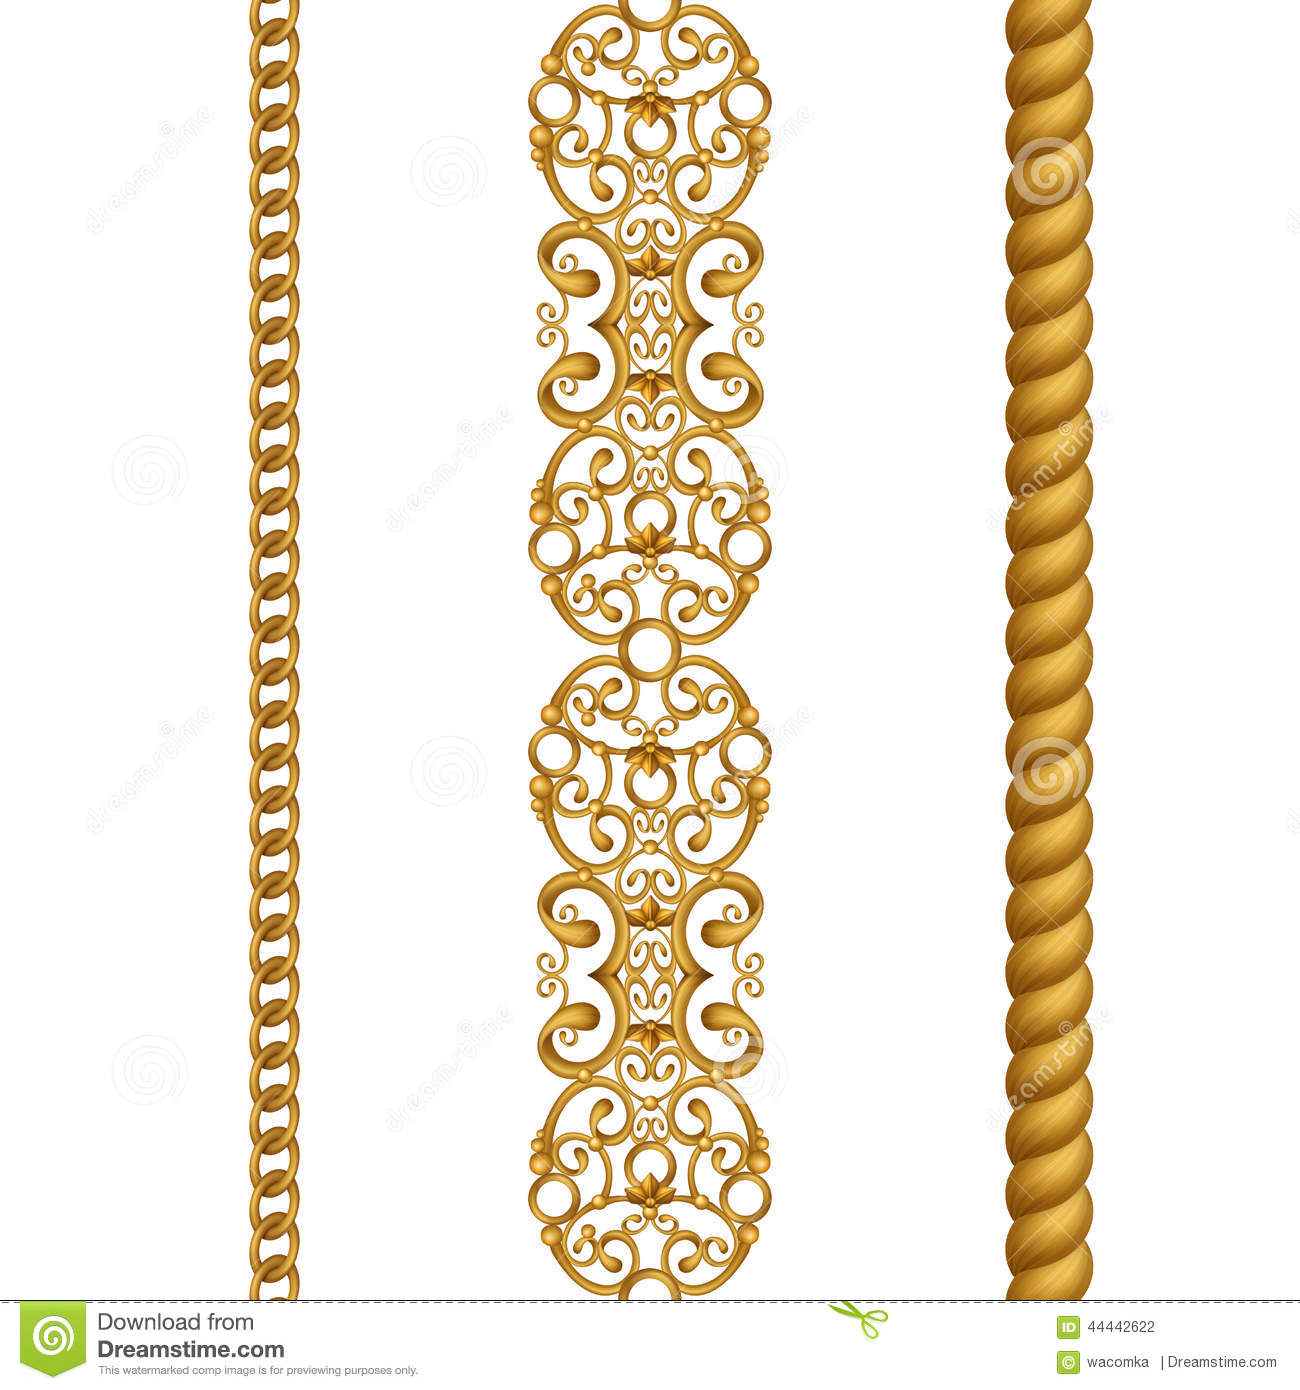 Gold Lace Borders Clipart - Clipart Kid